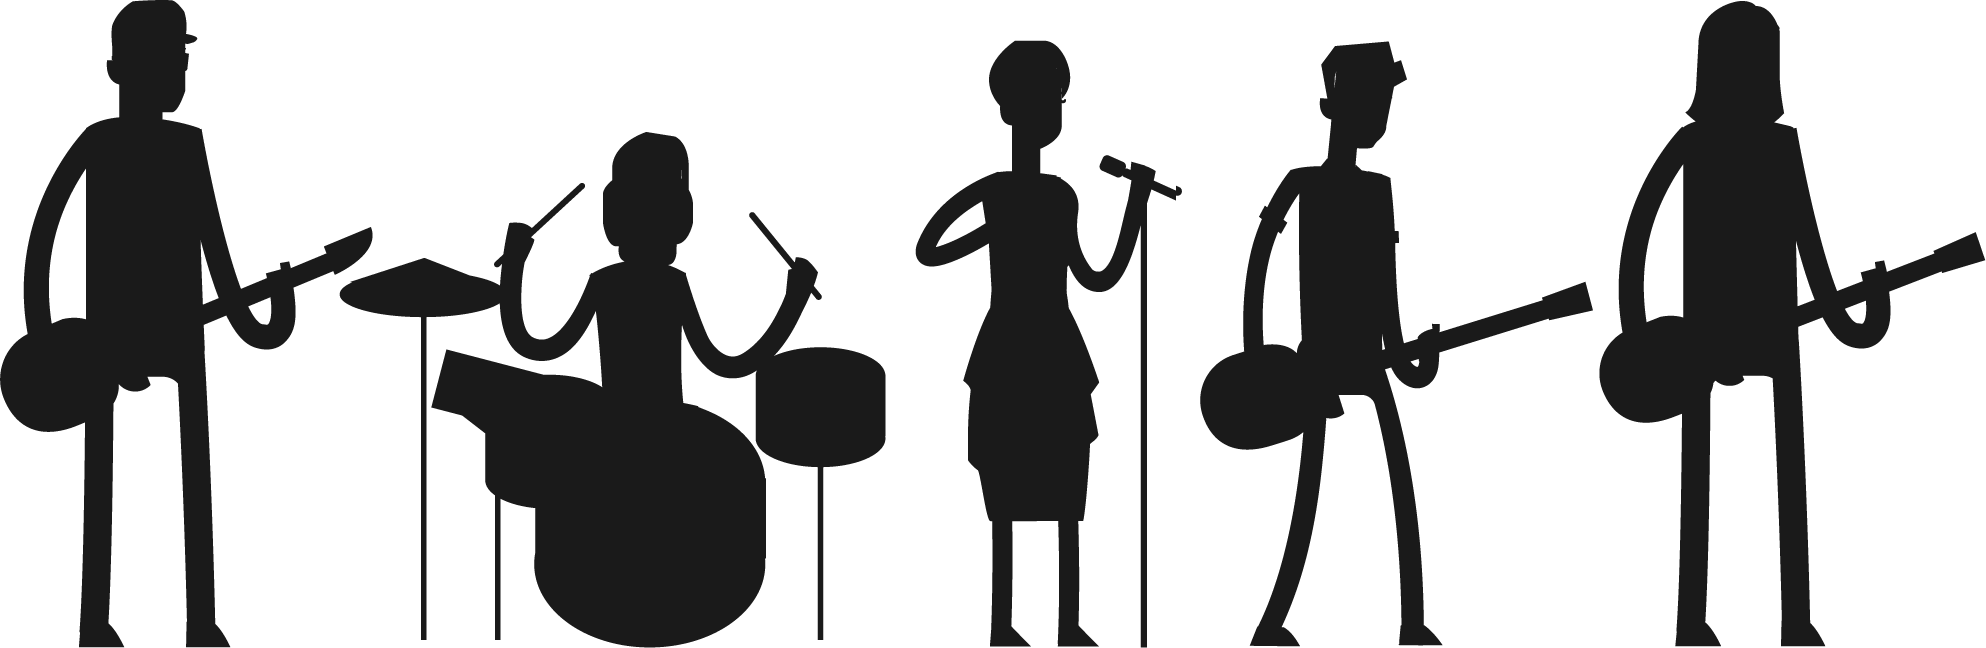 rock band silhouette png